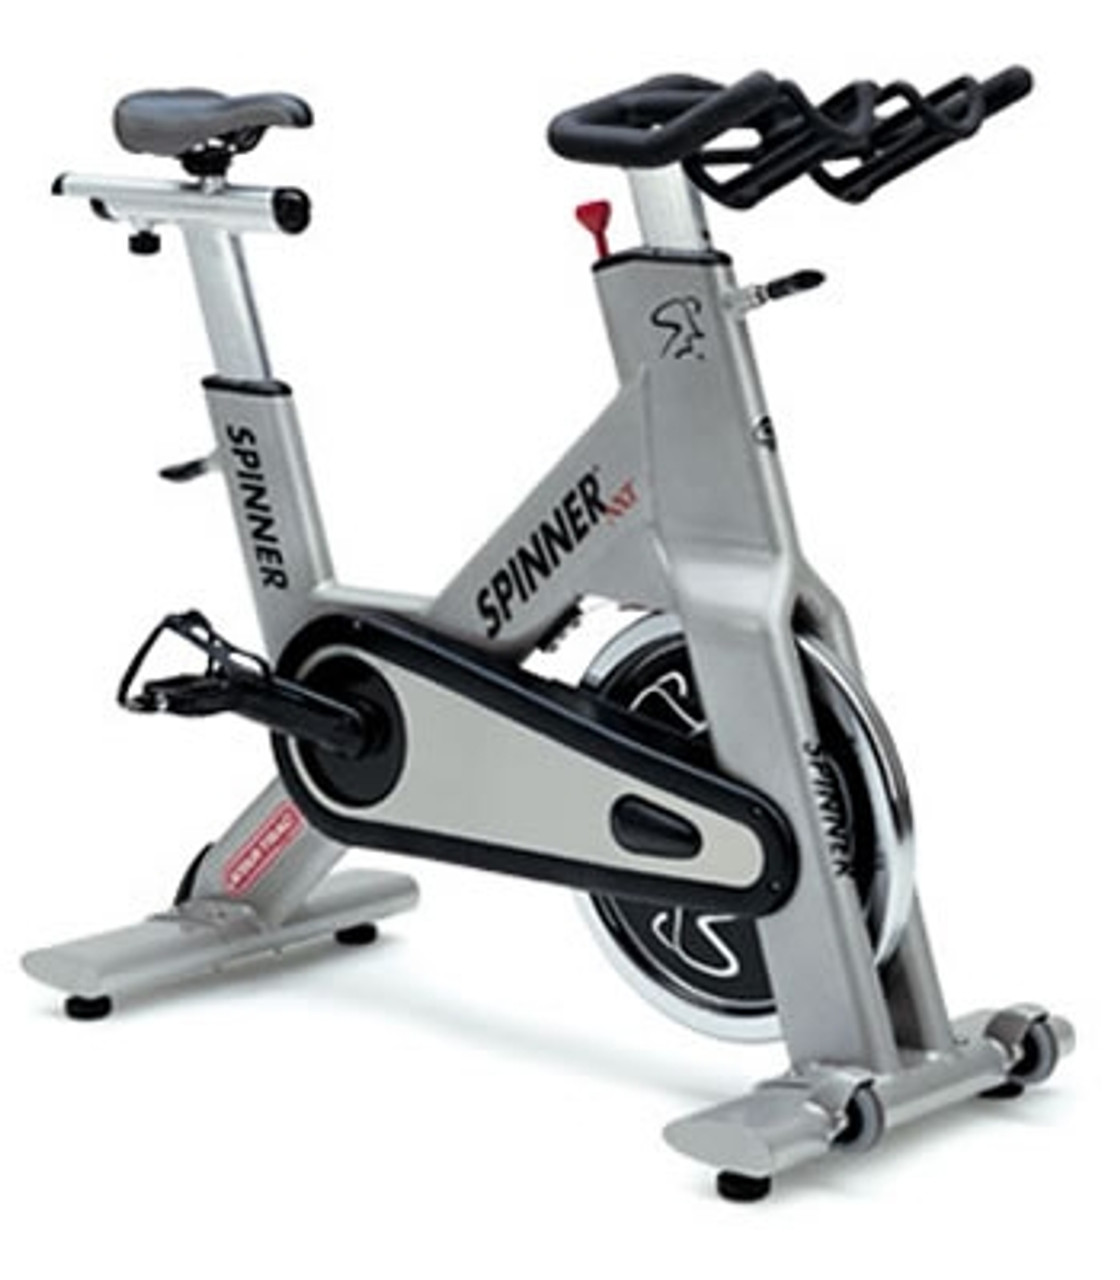 Star Trac NXT Stationary Bike FITNESS & GYM Exercise Cleaned n Serviced MINT